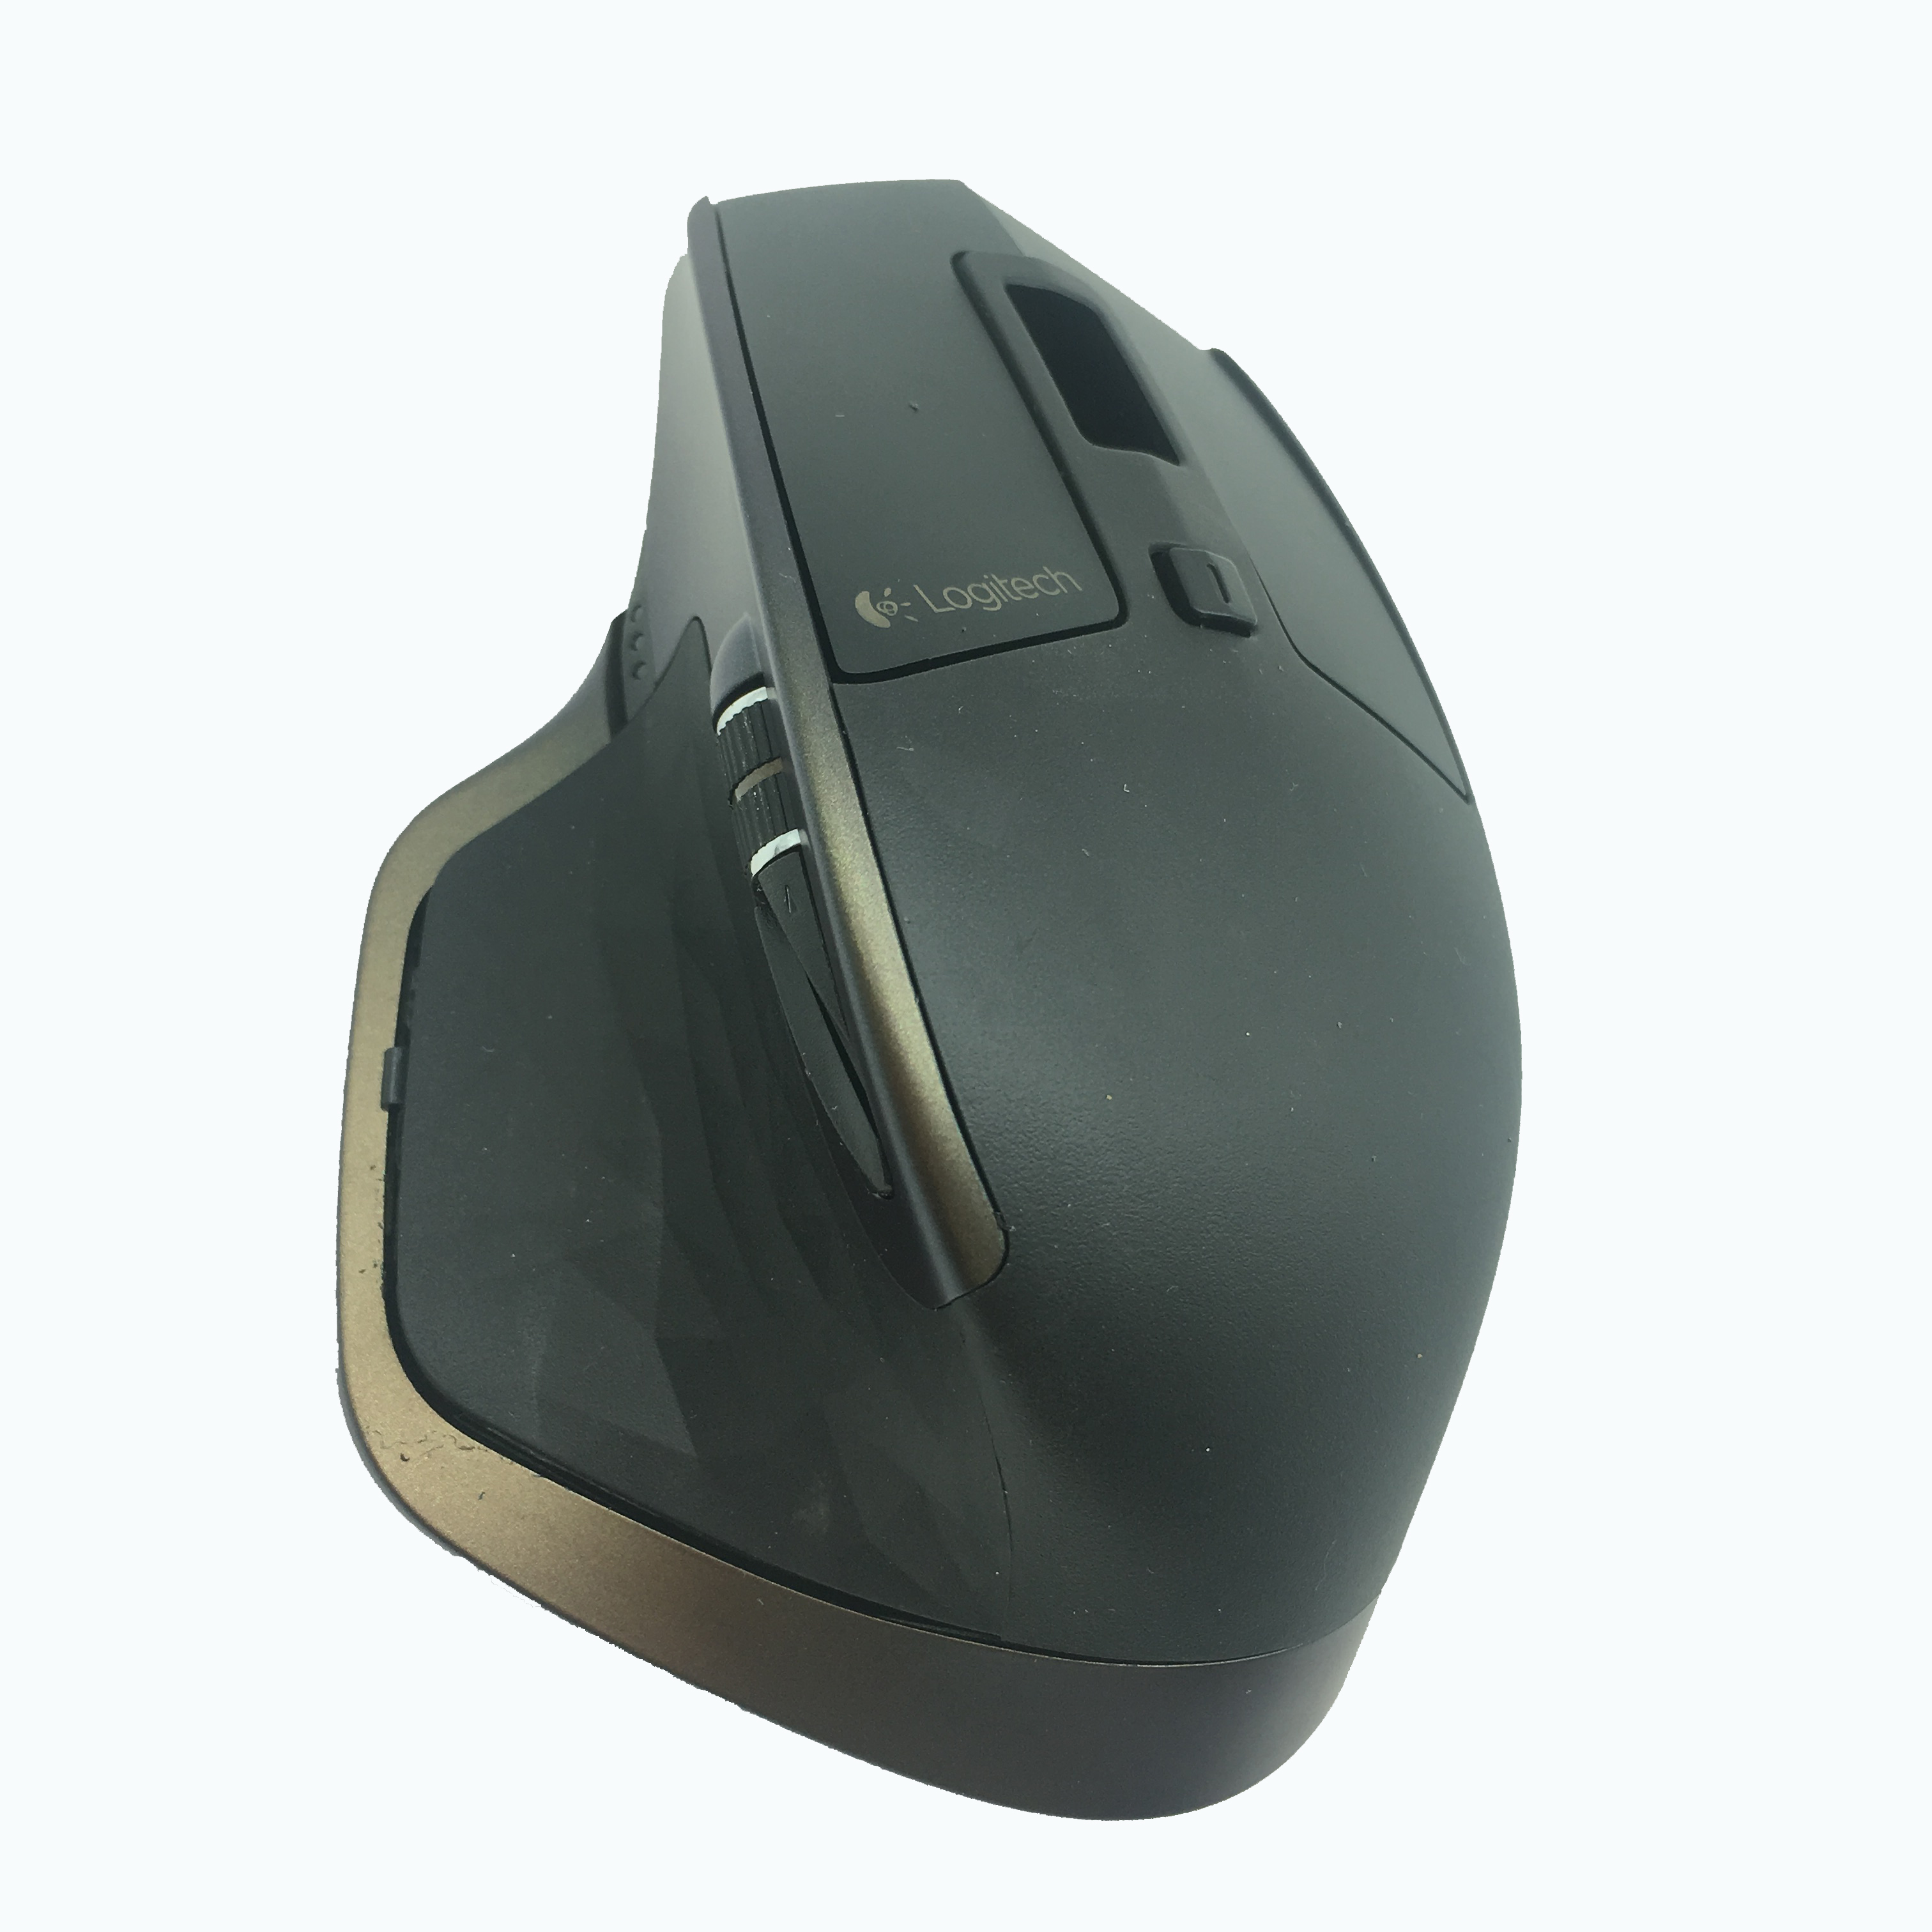 Original Logitech MX Master Mouse Shell Mouse Case Mouse Housing For Logitech Mouse MX Master 1st Generation And 2S Genuine